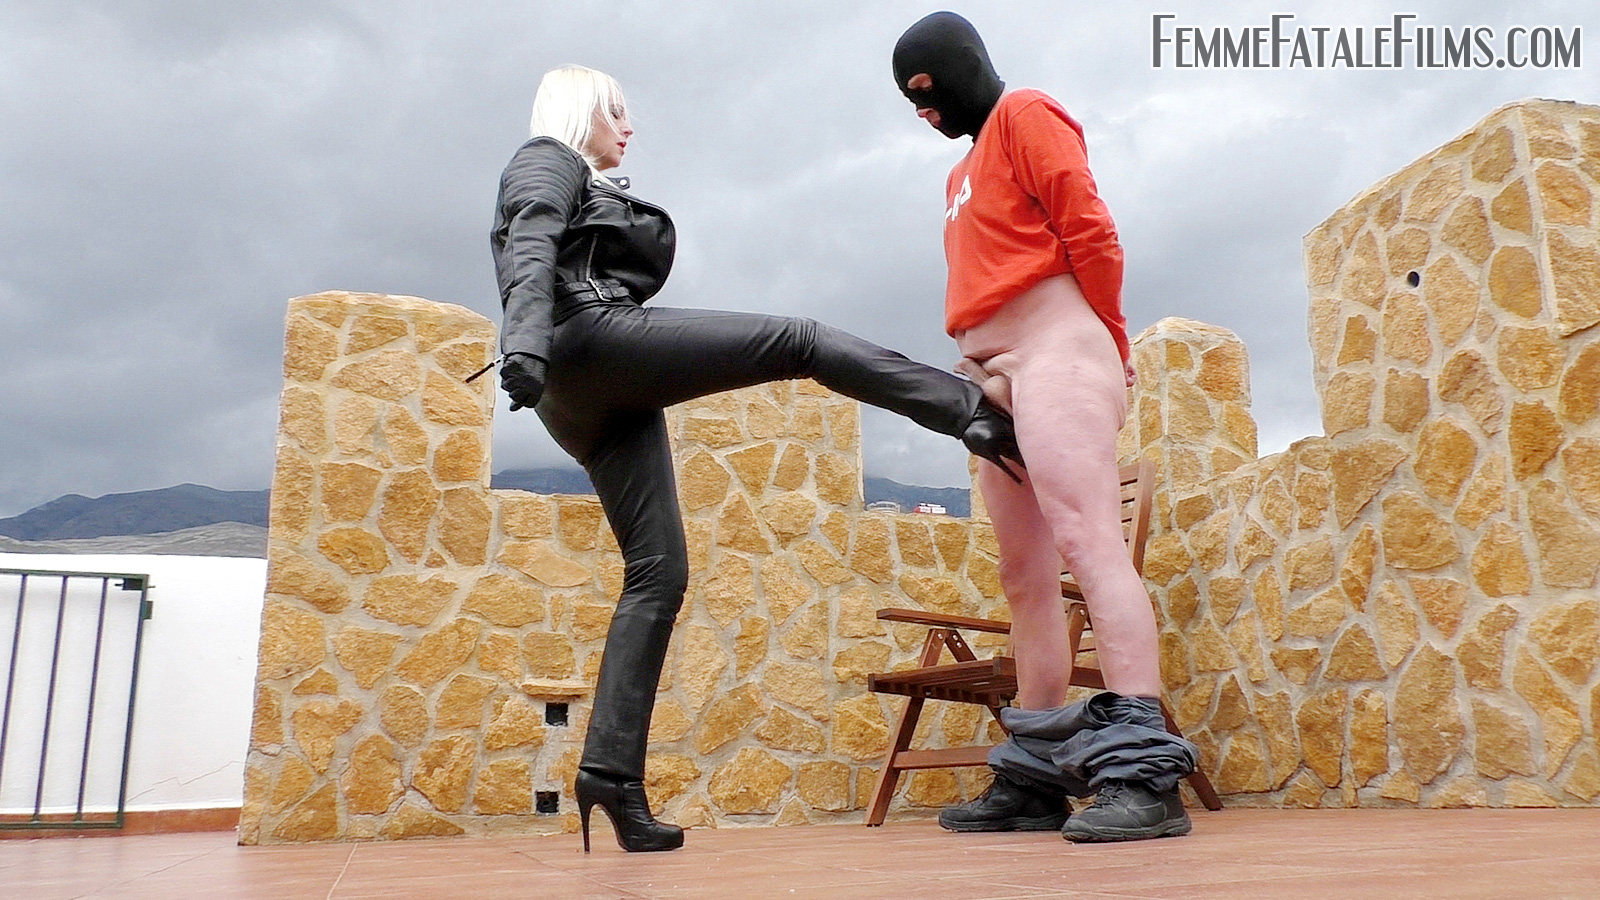 Ball Busting Leather Milf